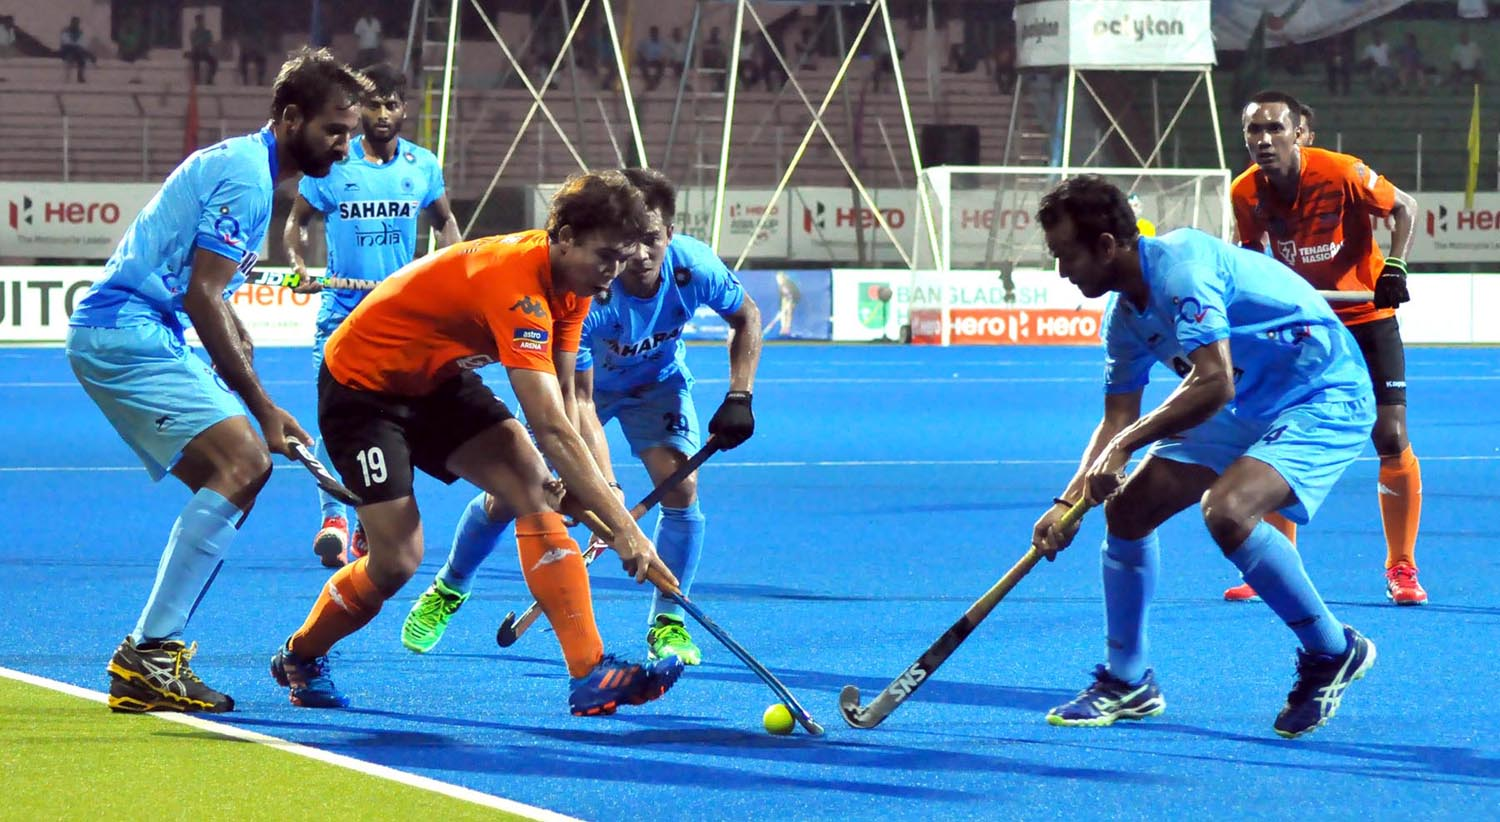 A view of the 'Super Four' match of the Hero Asia Cup Hockey between India and Malaysia at the Moulana Bhashani National Hockey Stadium on Thursday.